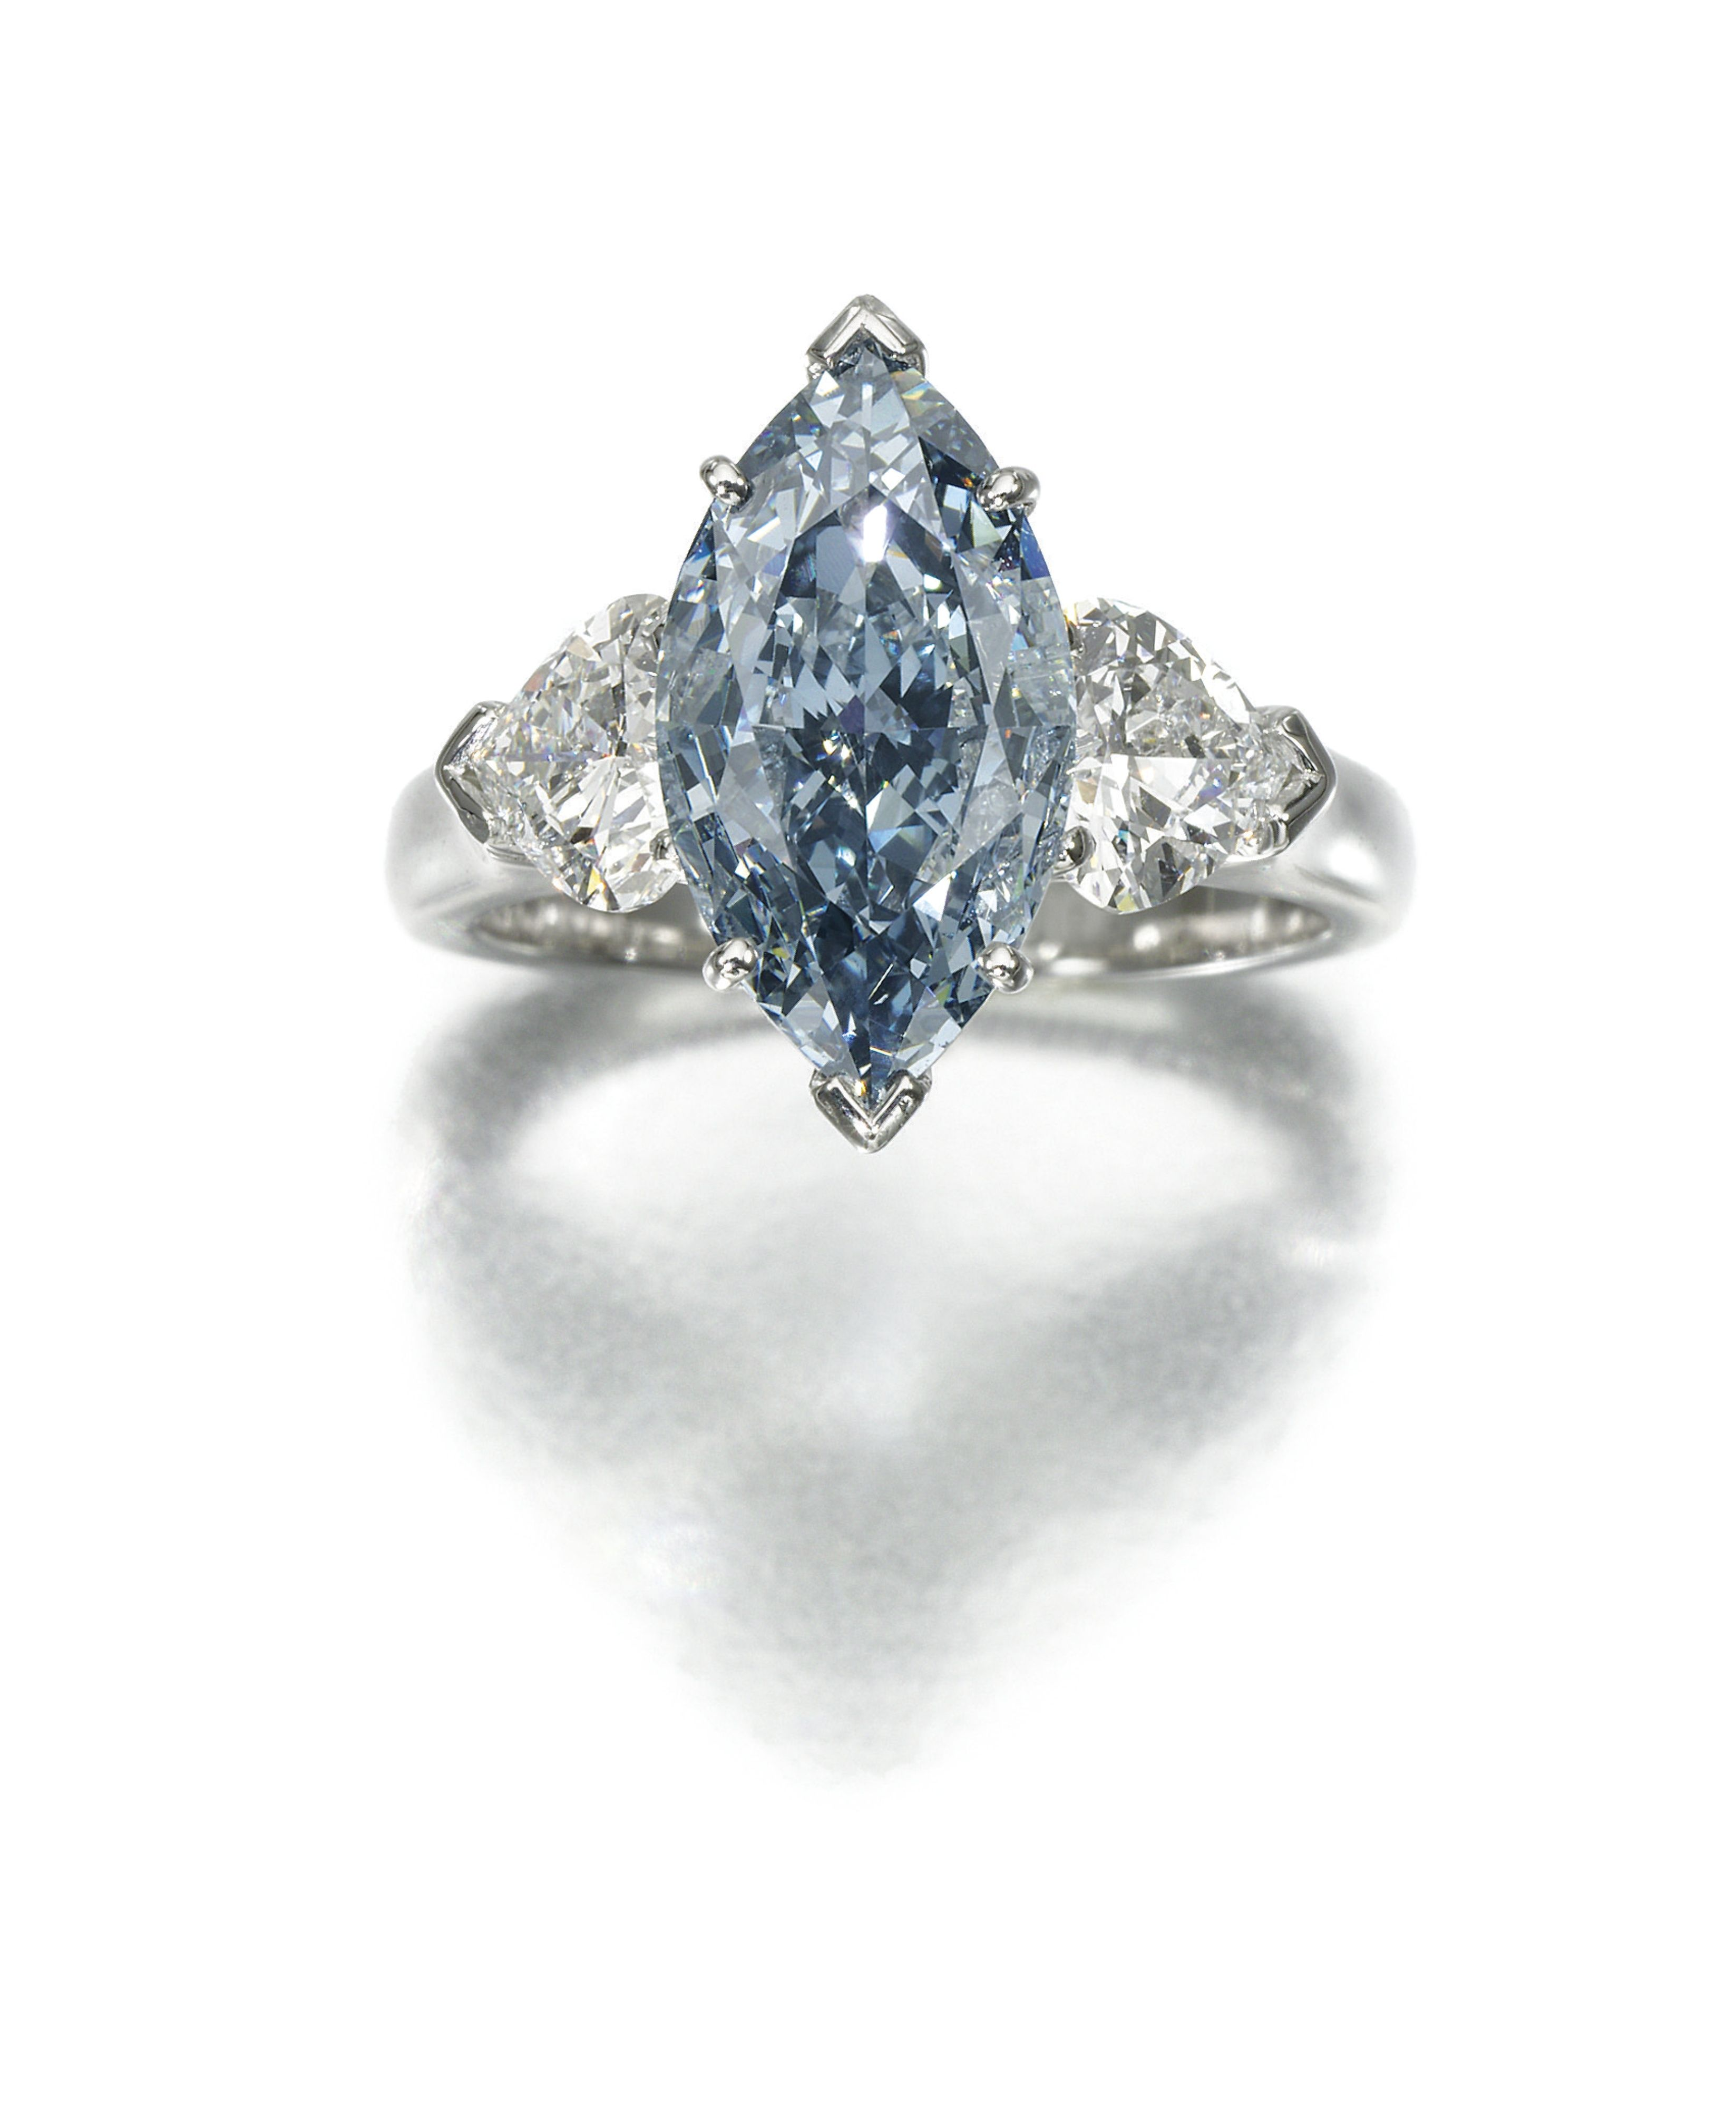 f9230b4edcc VERY ATTRACTIVE FANCY DEEP BLUE DIAMOND AND DIAMOND RING